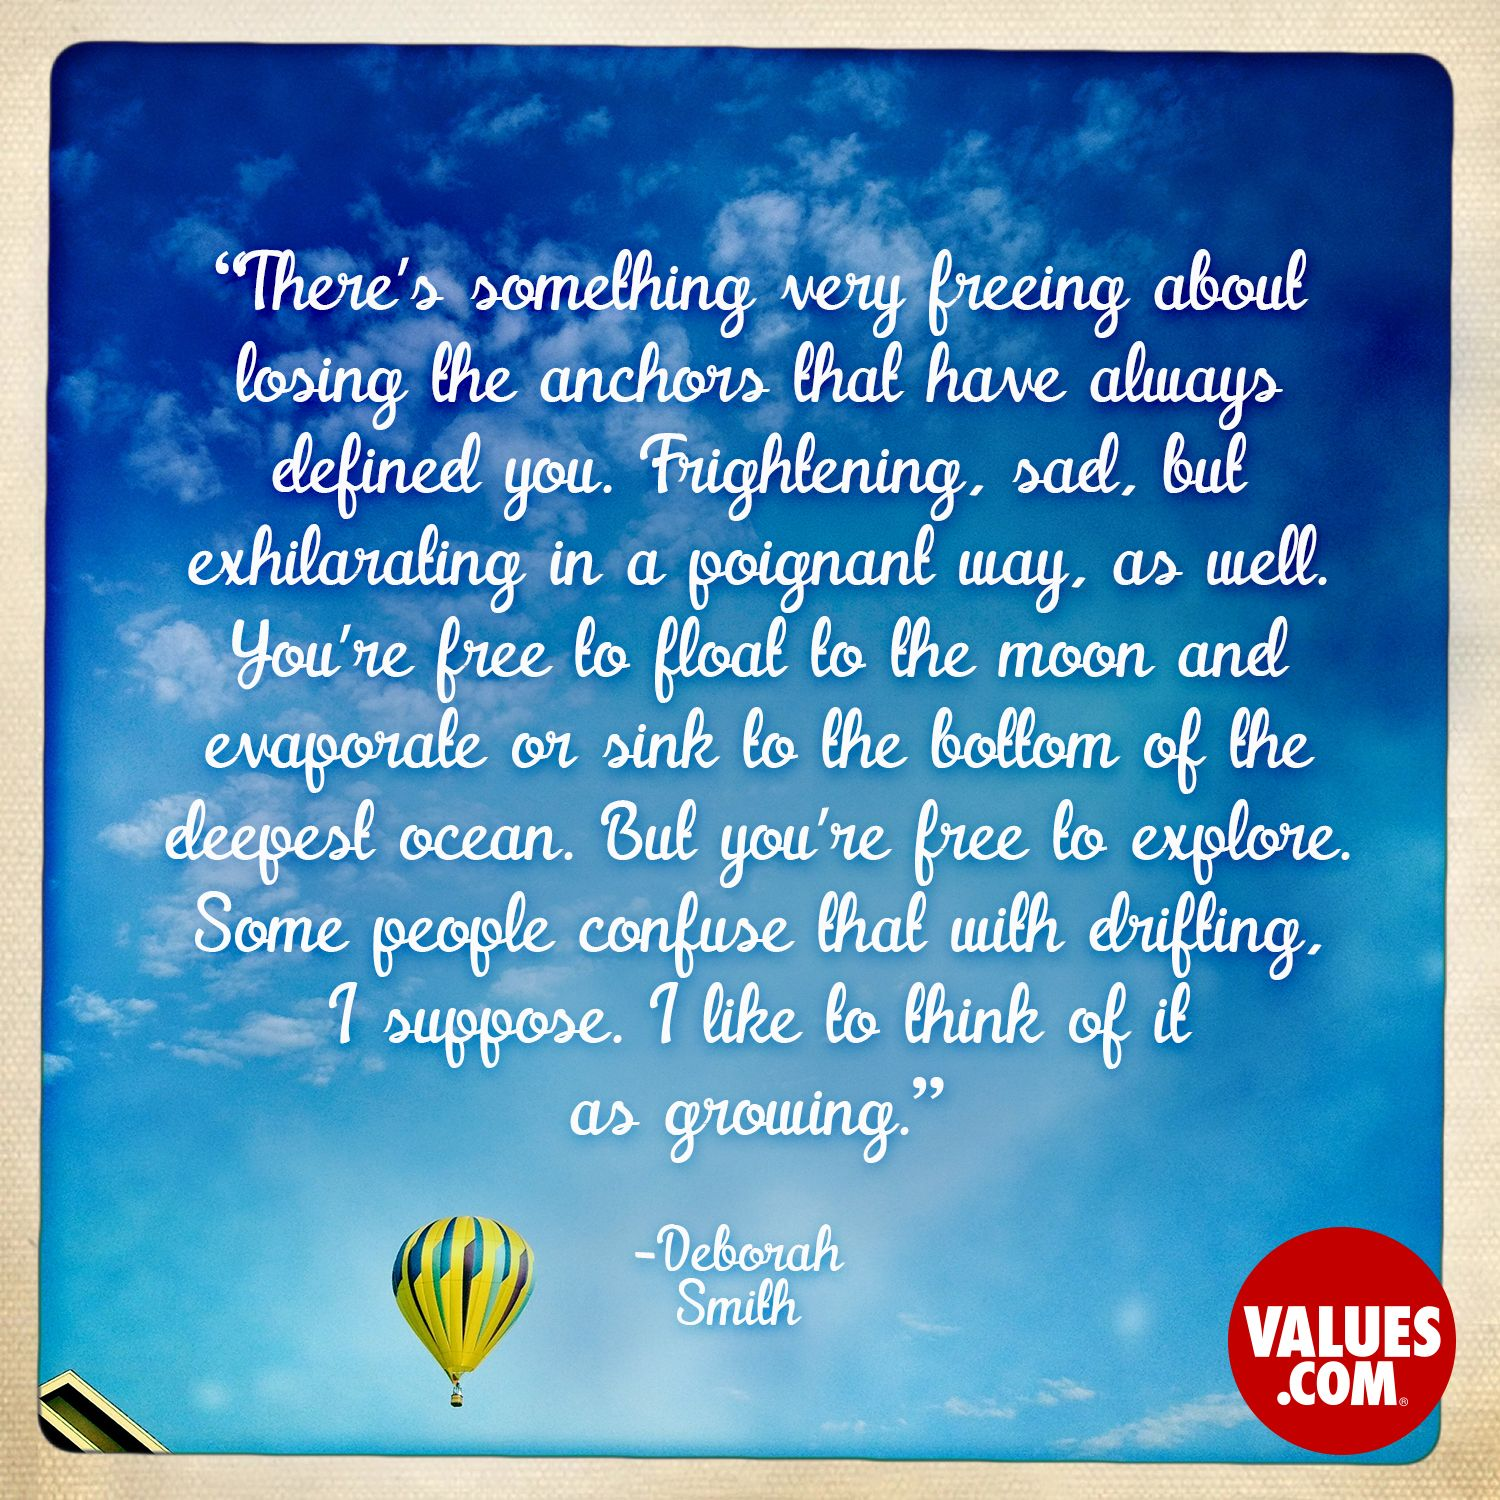 An inspirational quote by Deborah Smith from